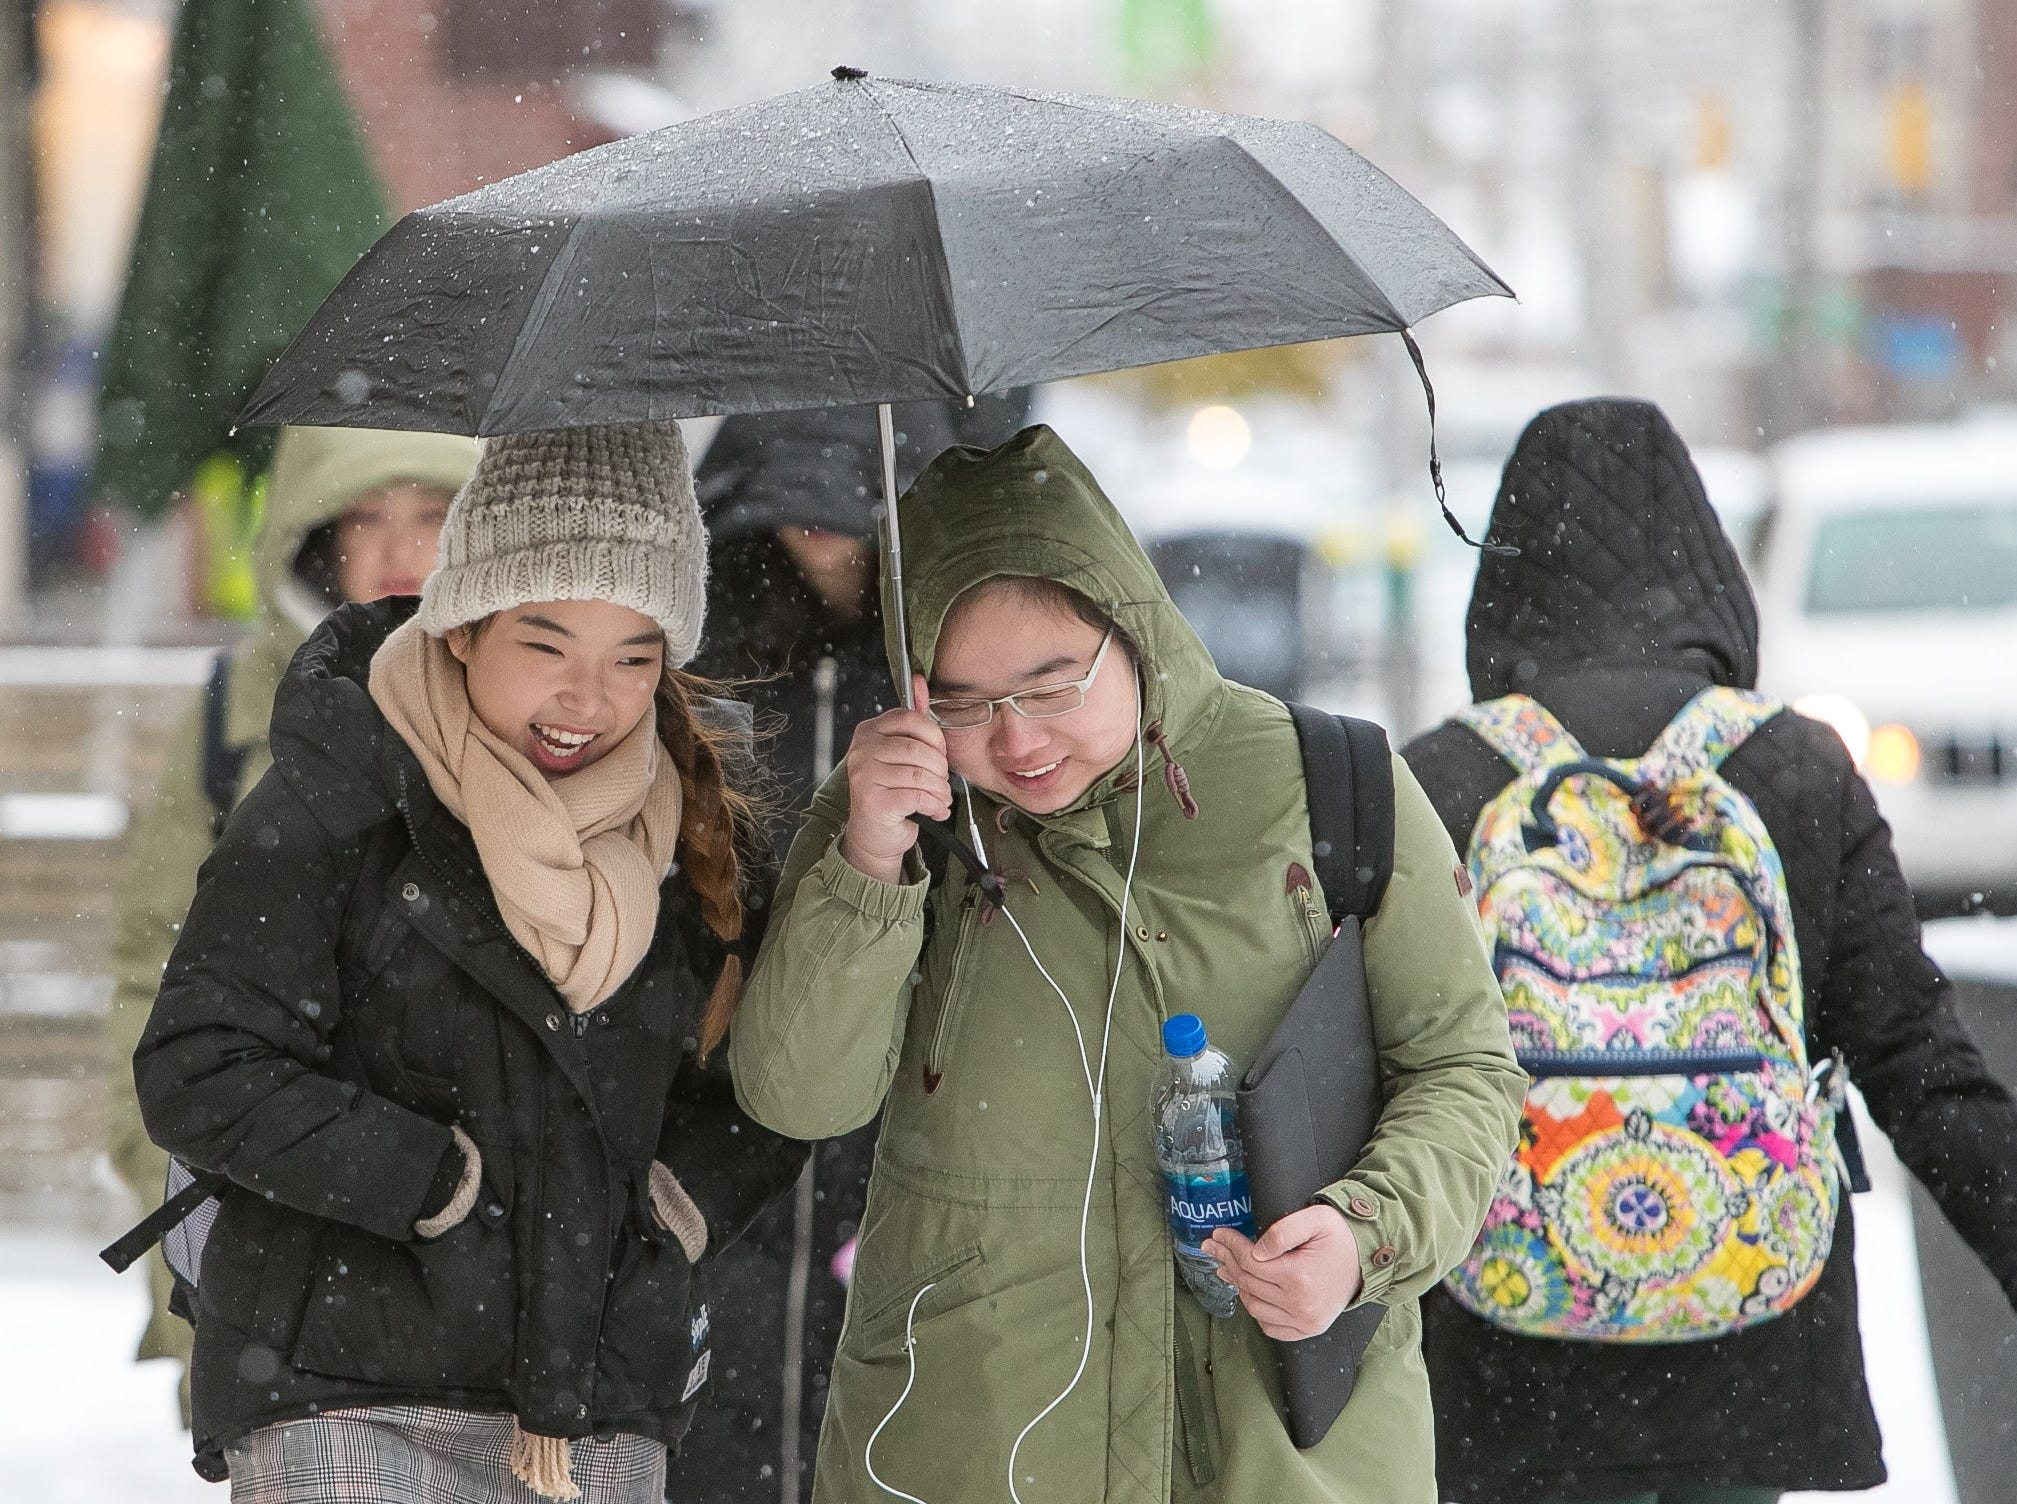 University of Delaware students walk through the snow along Main Street as classes close at 2:30pm due to the weather.